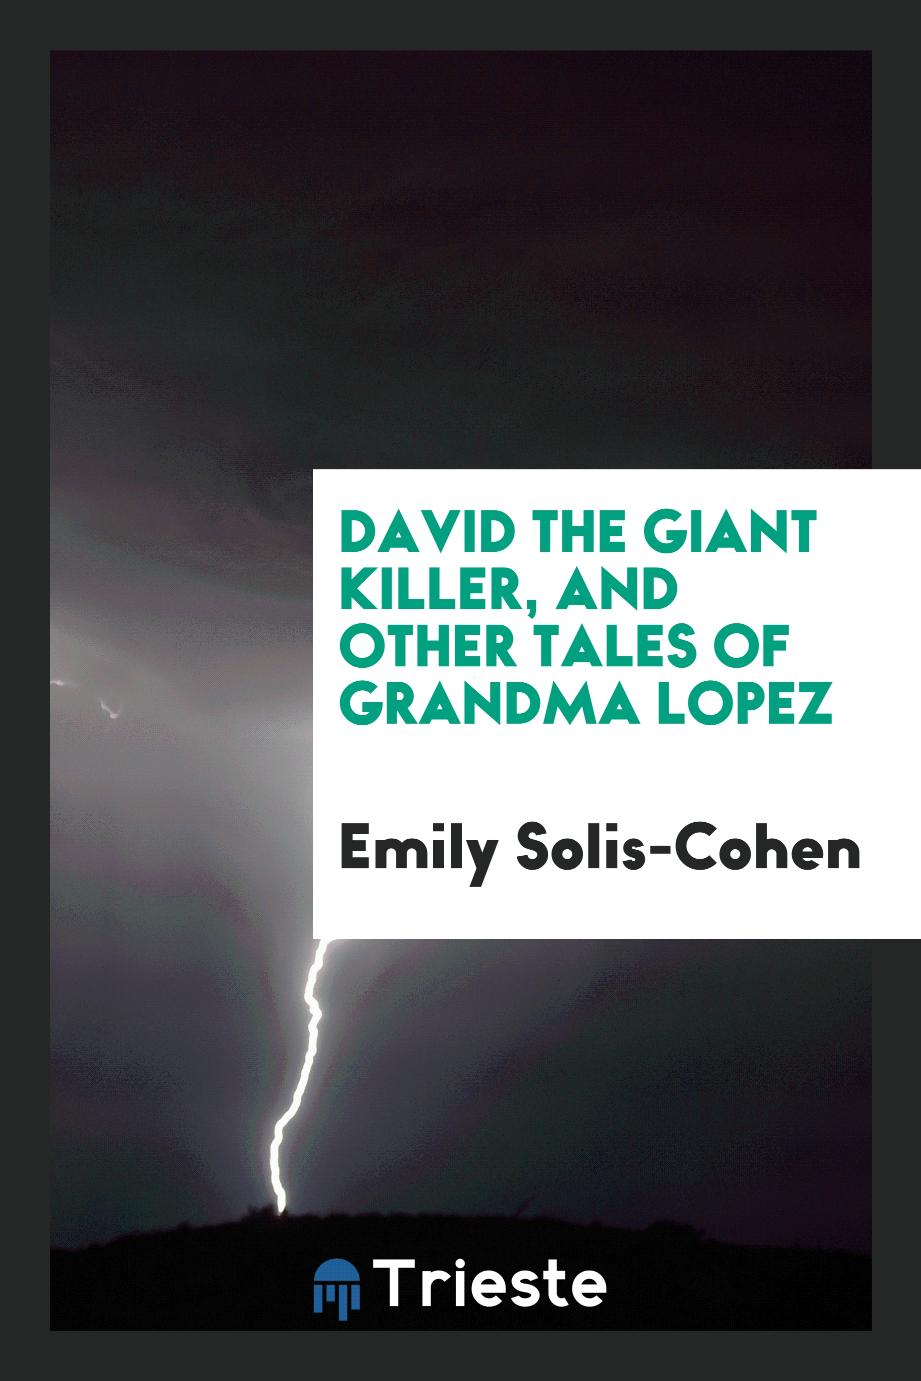 David the giant killer, and other tales of Grandma Lopez